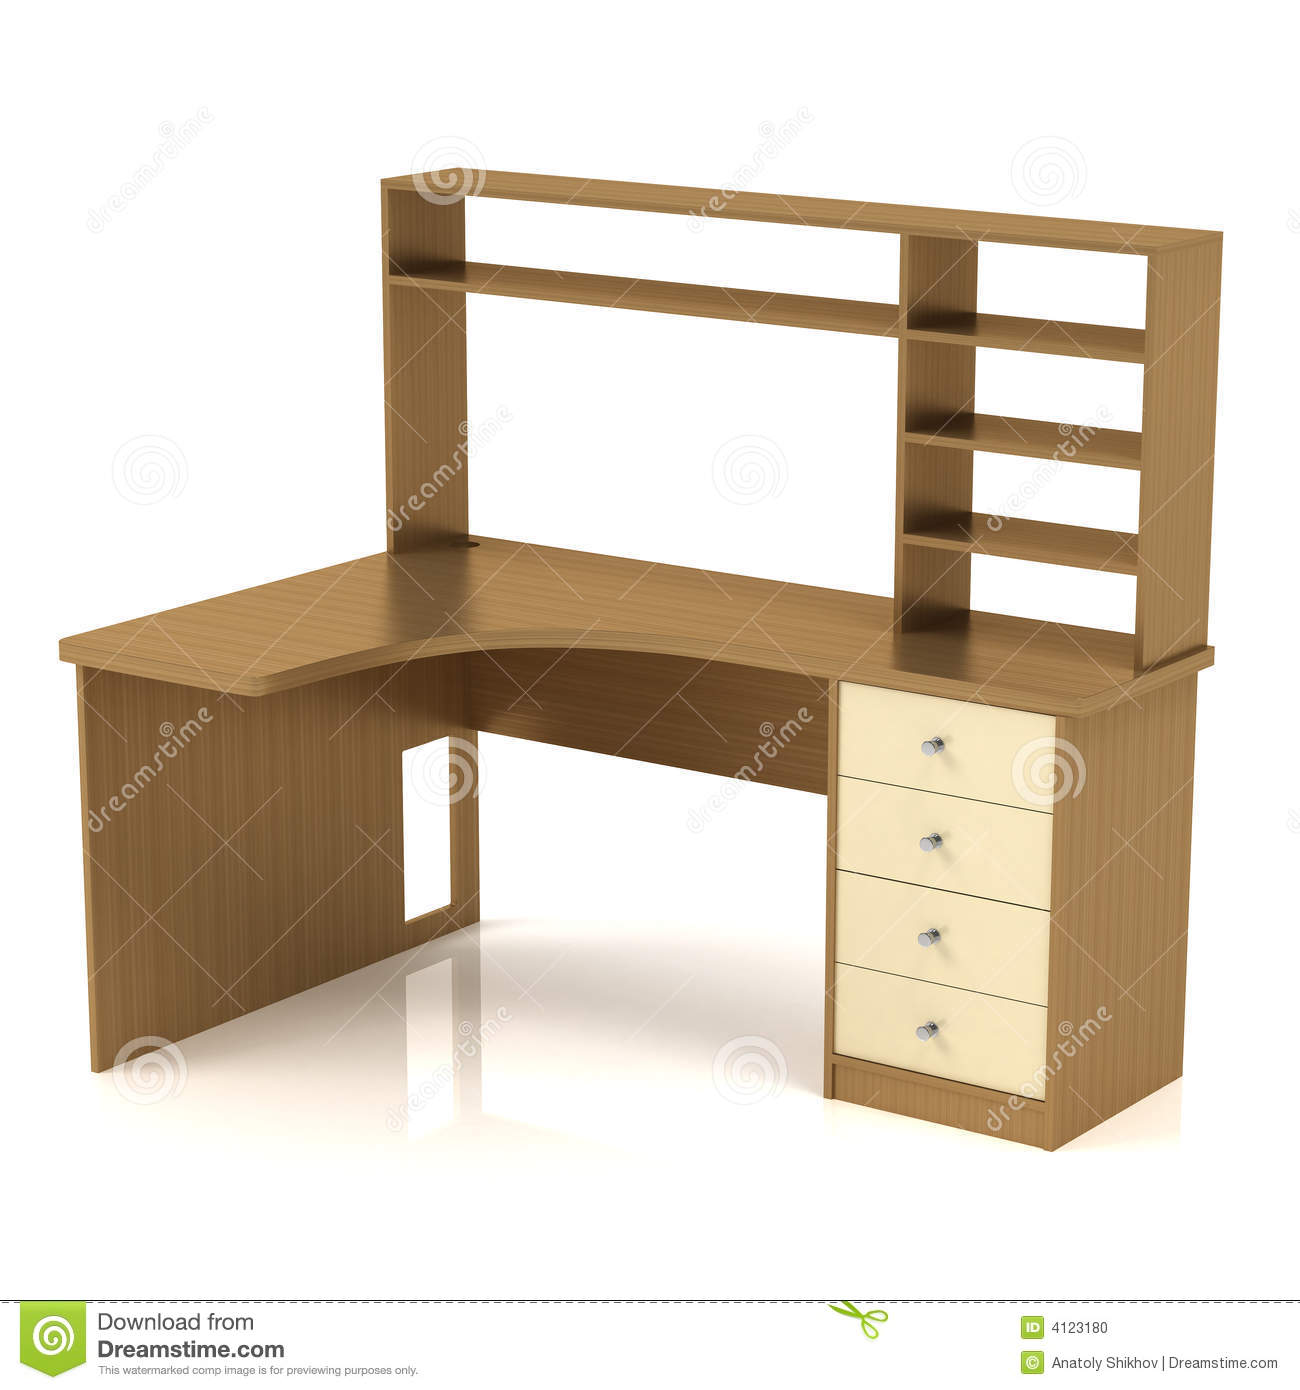 Dety Desk - worktable with a shelf and a drawer pedestal. 3D render.